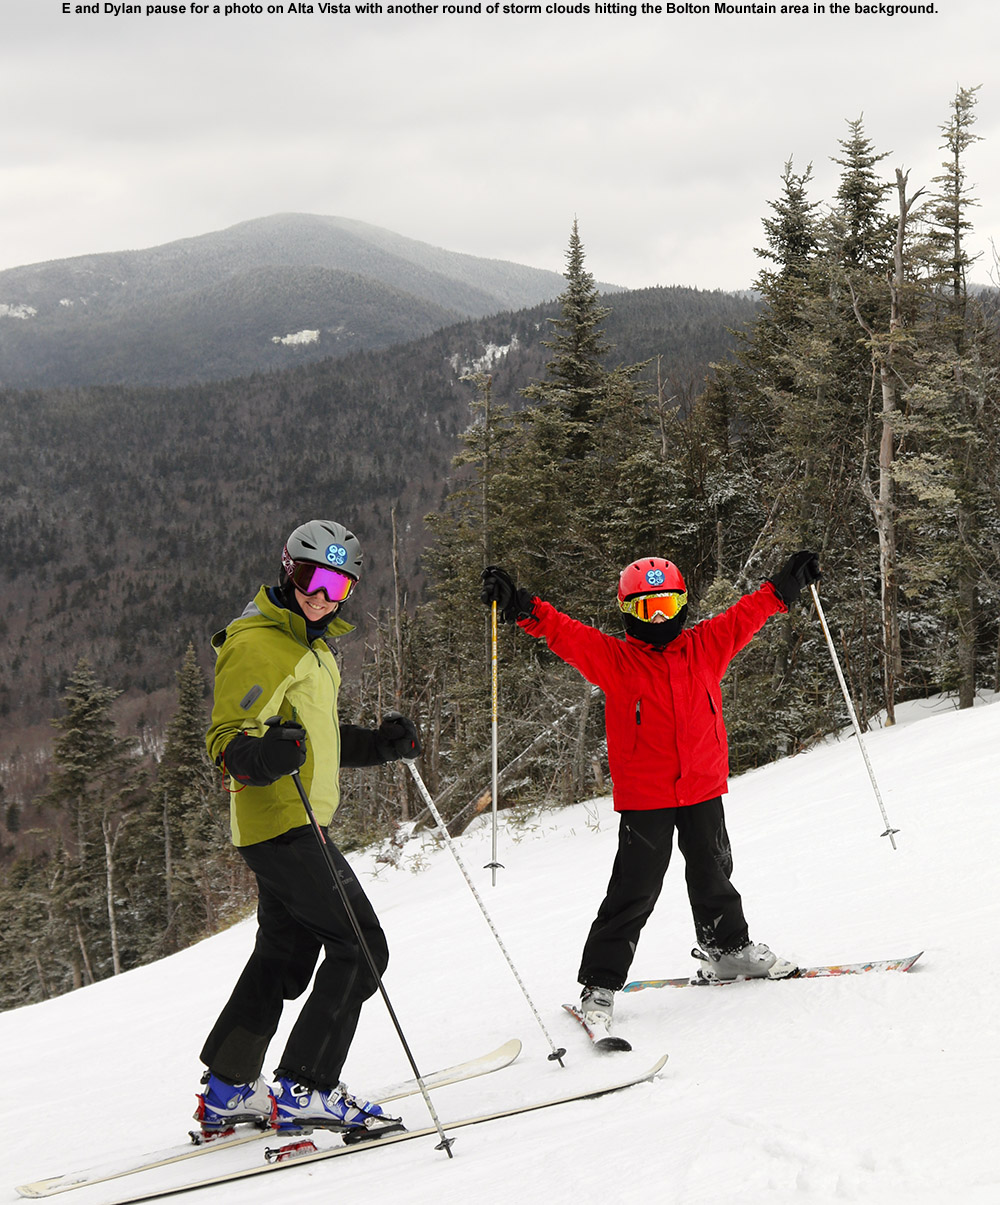 An image of Erica and Dylan near the top of the Alta Vista trail at Bolton Valley Ski Resort in Vermont